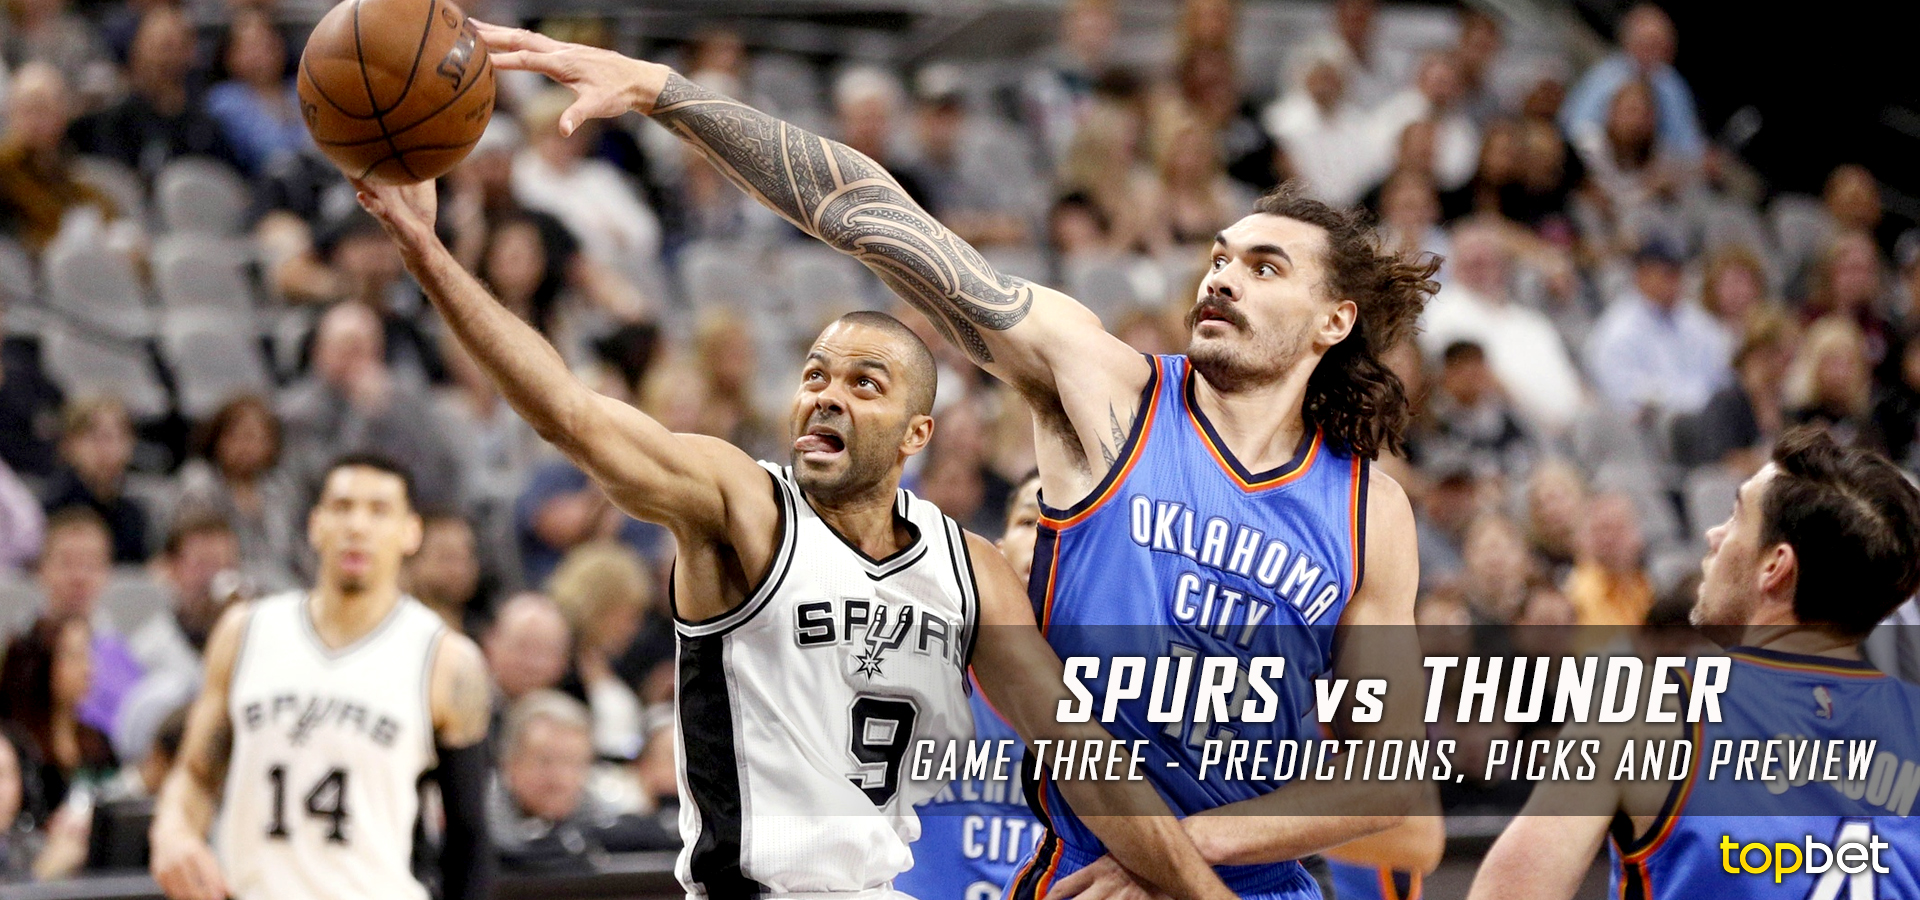 Spurs vs Thunder Series Game 3 Predictions, Picks and Odds